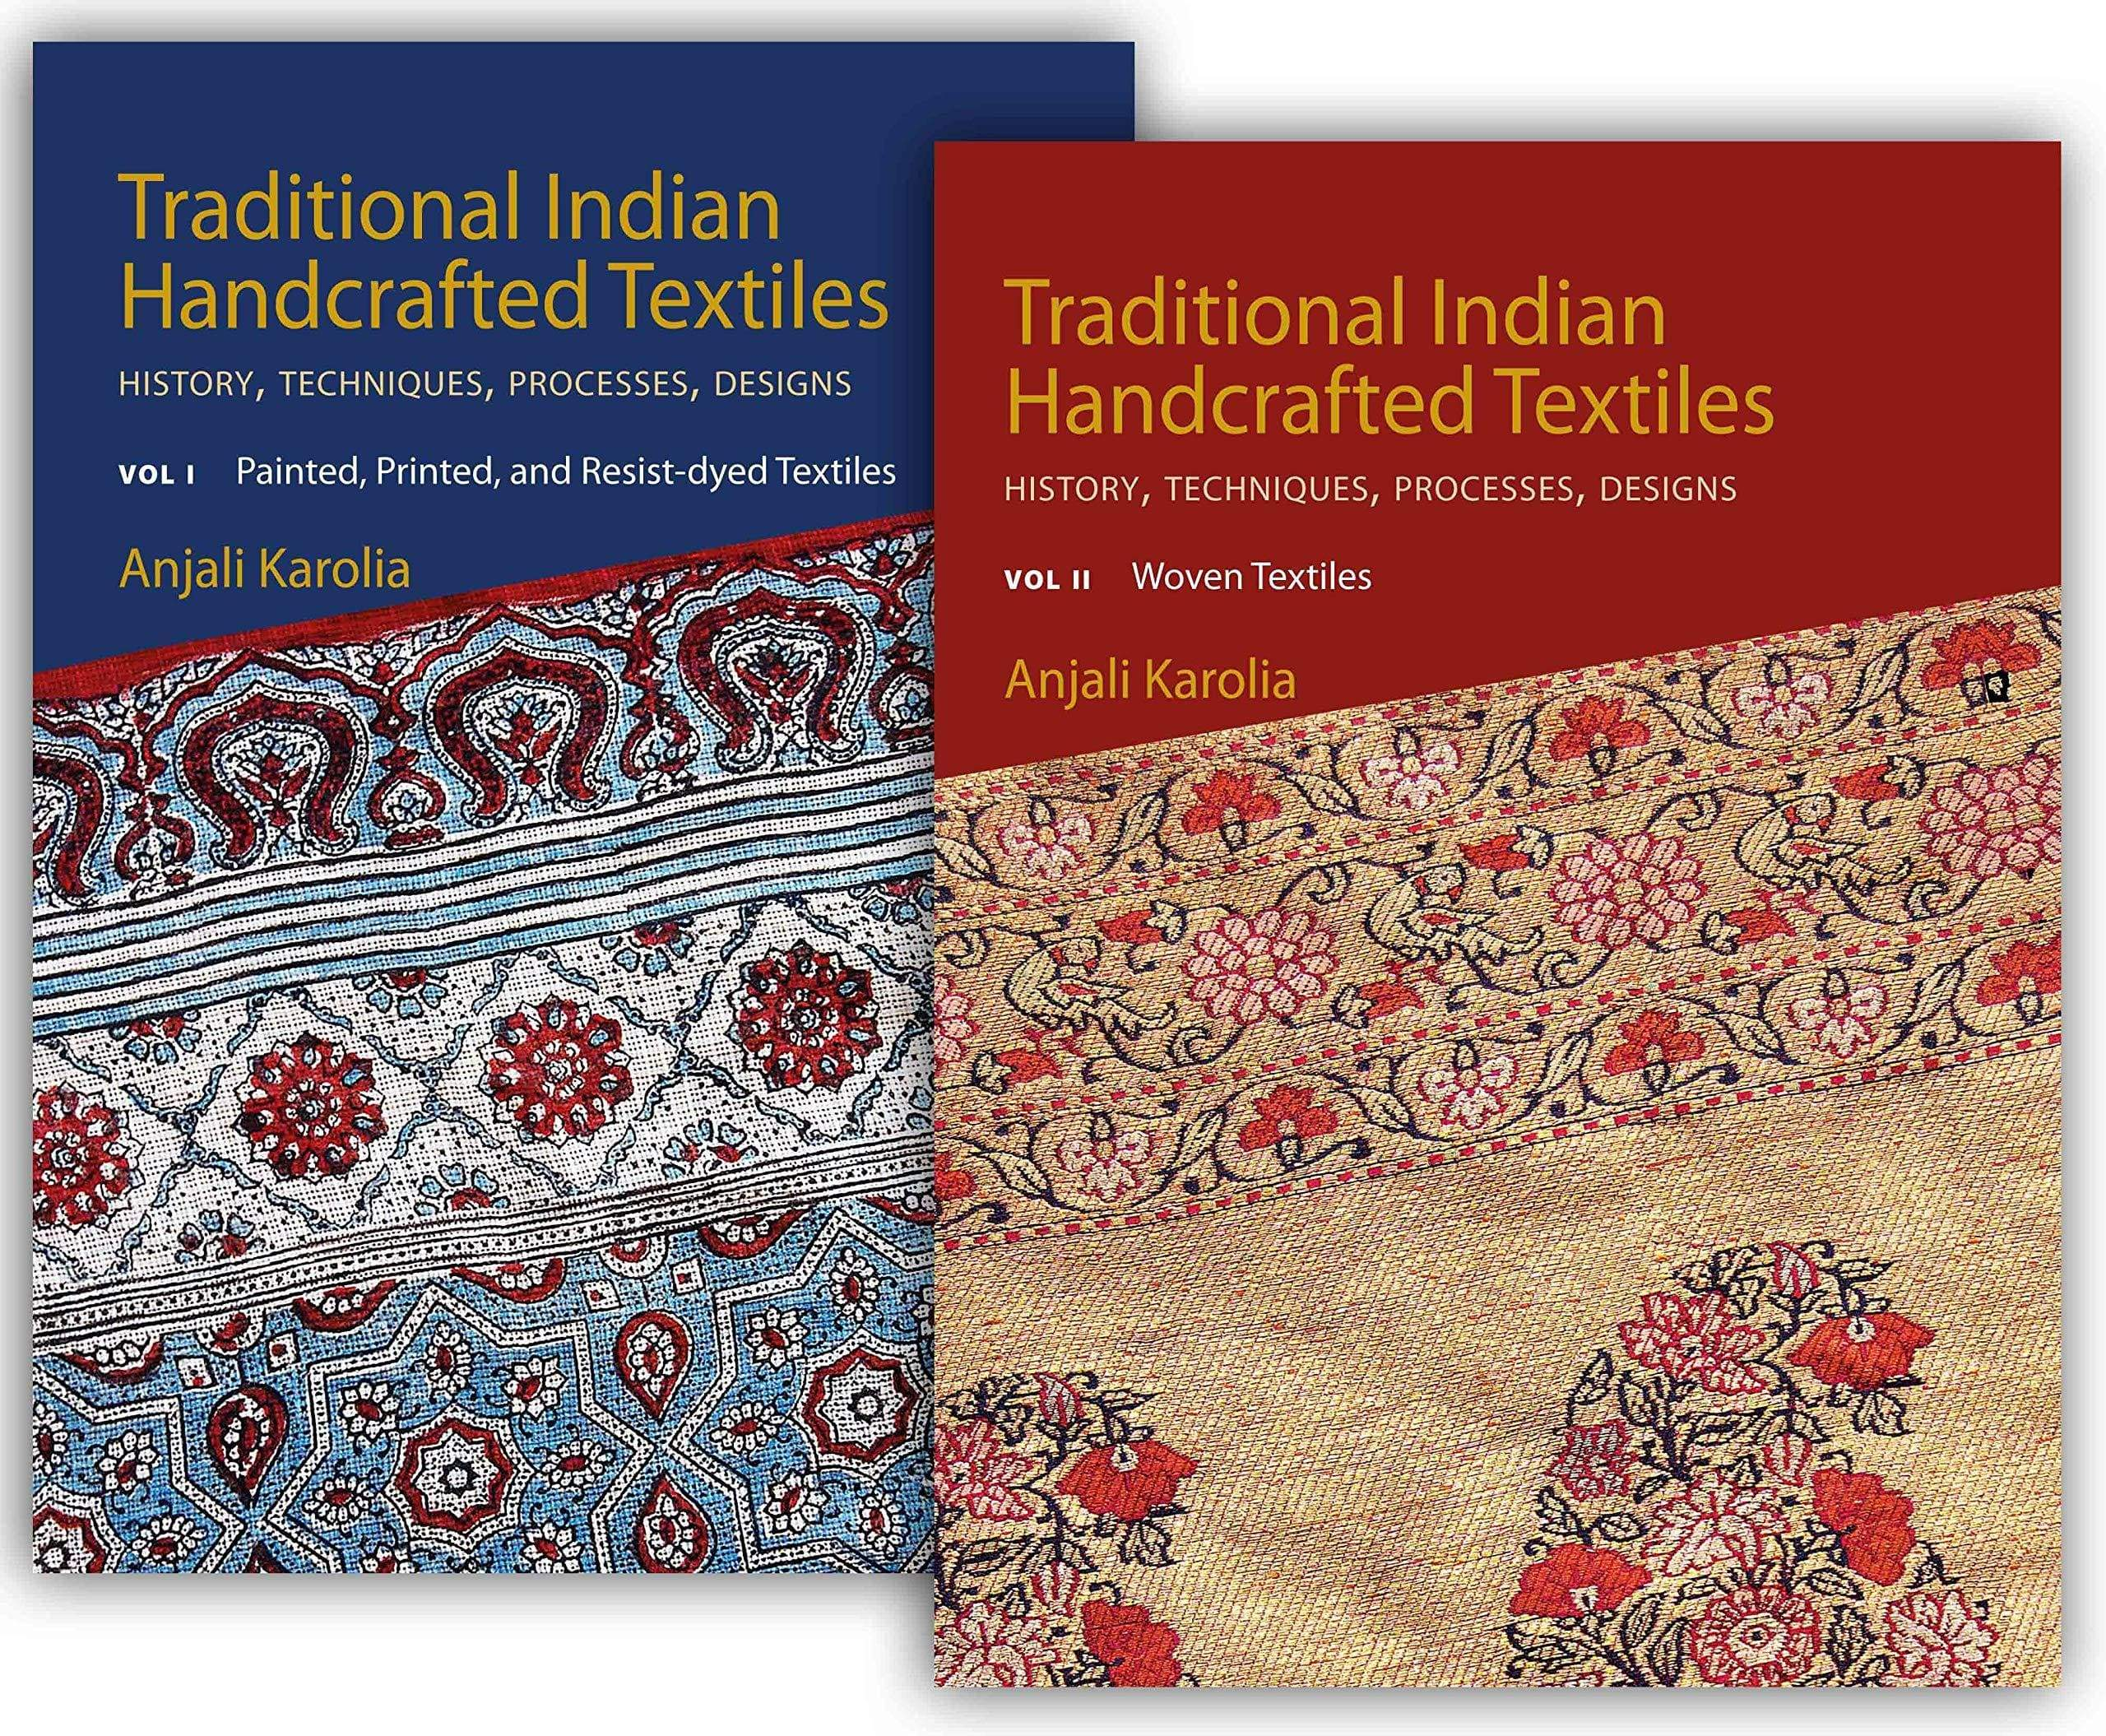 Traditional Indian Handcrafted Textiles: History, Techniques, Processes, and Designs -Vol. I & II